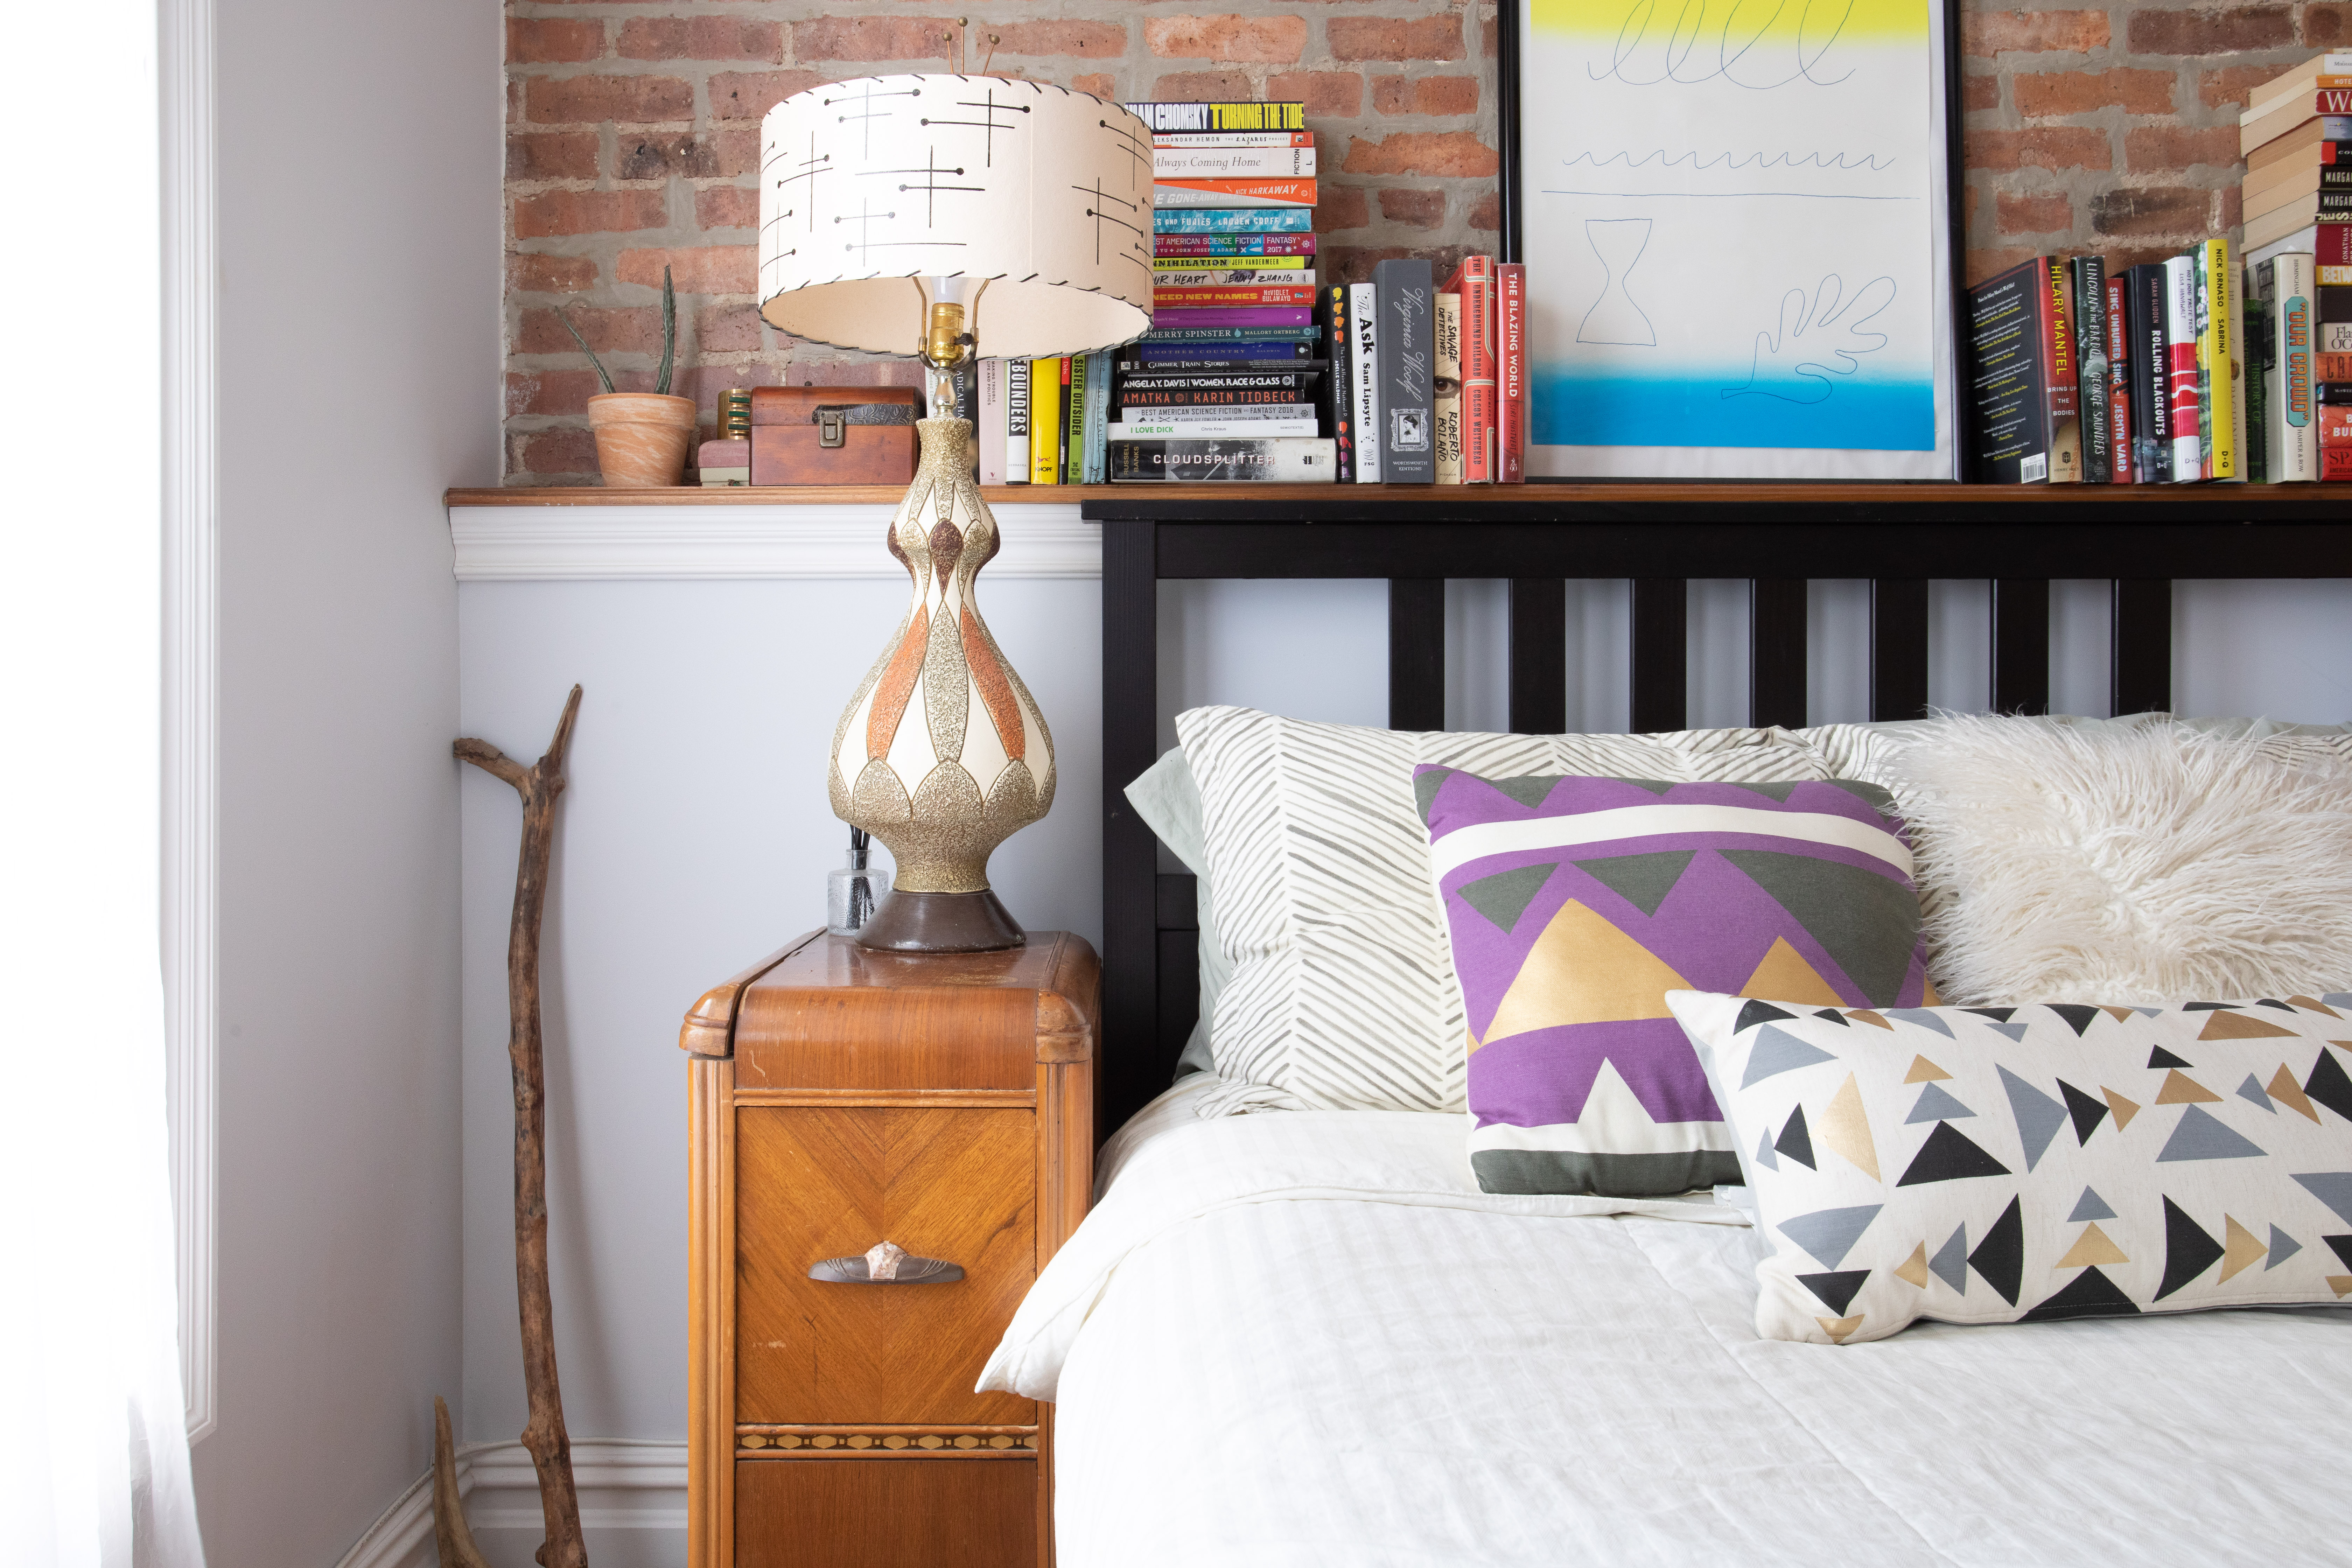 Wondrous 208 Square Foot Brooklyn Small Studio Apartment Tour Gamerscity Chair Design For Home Gamerscityorg